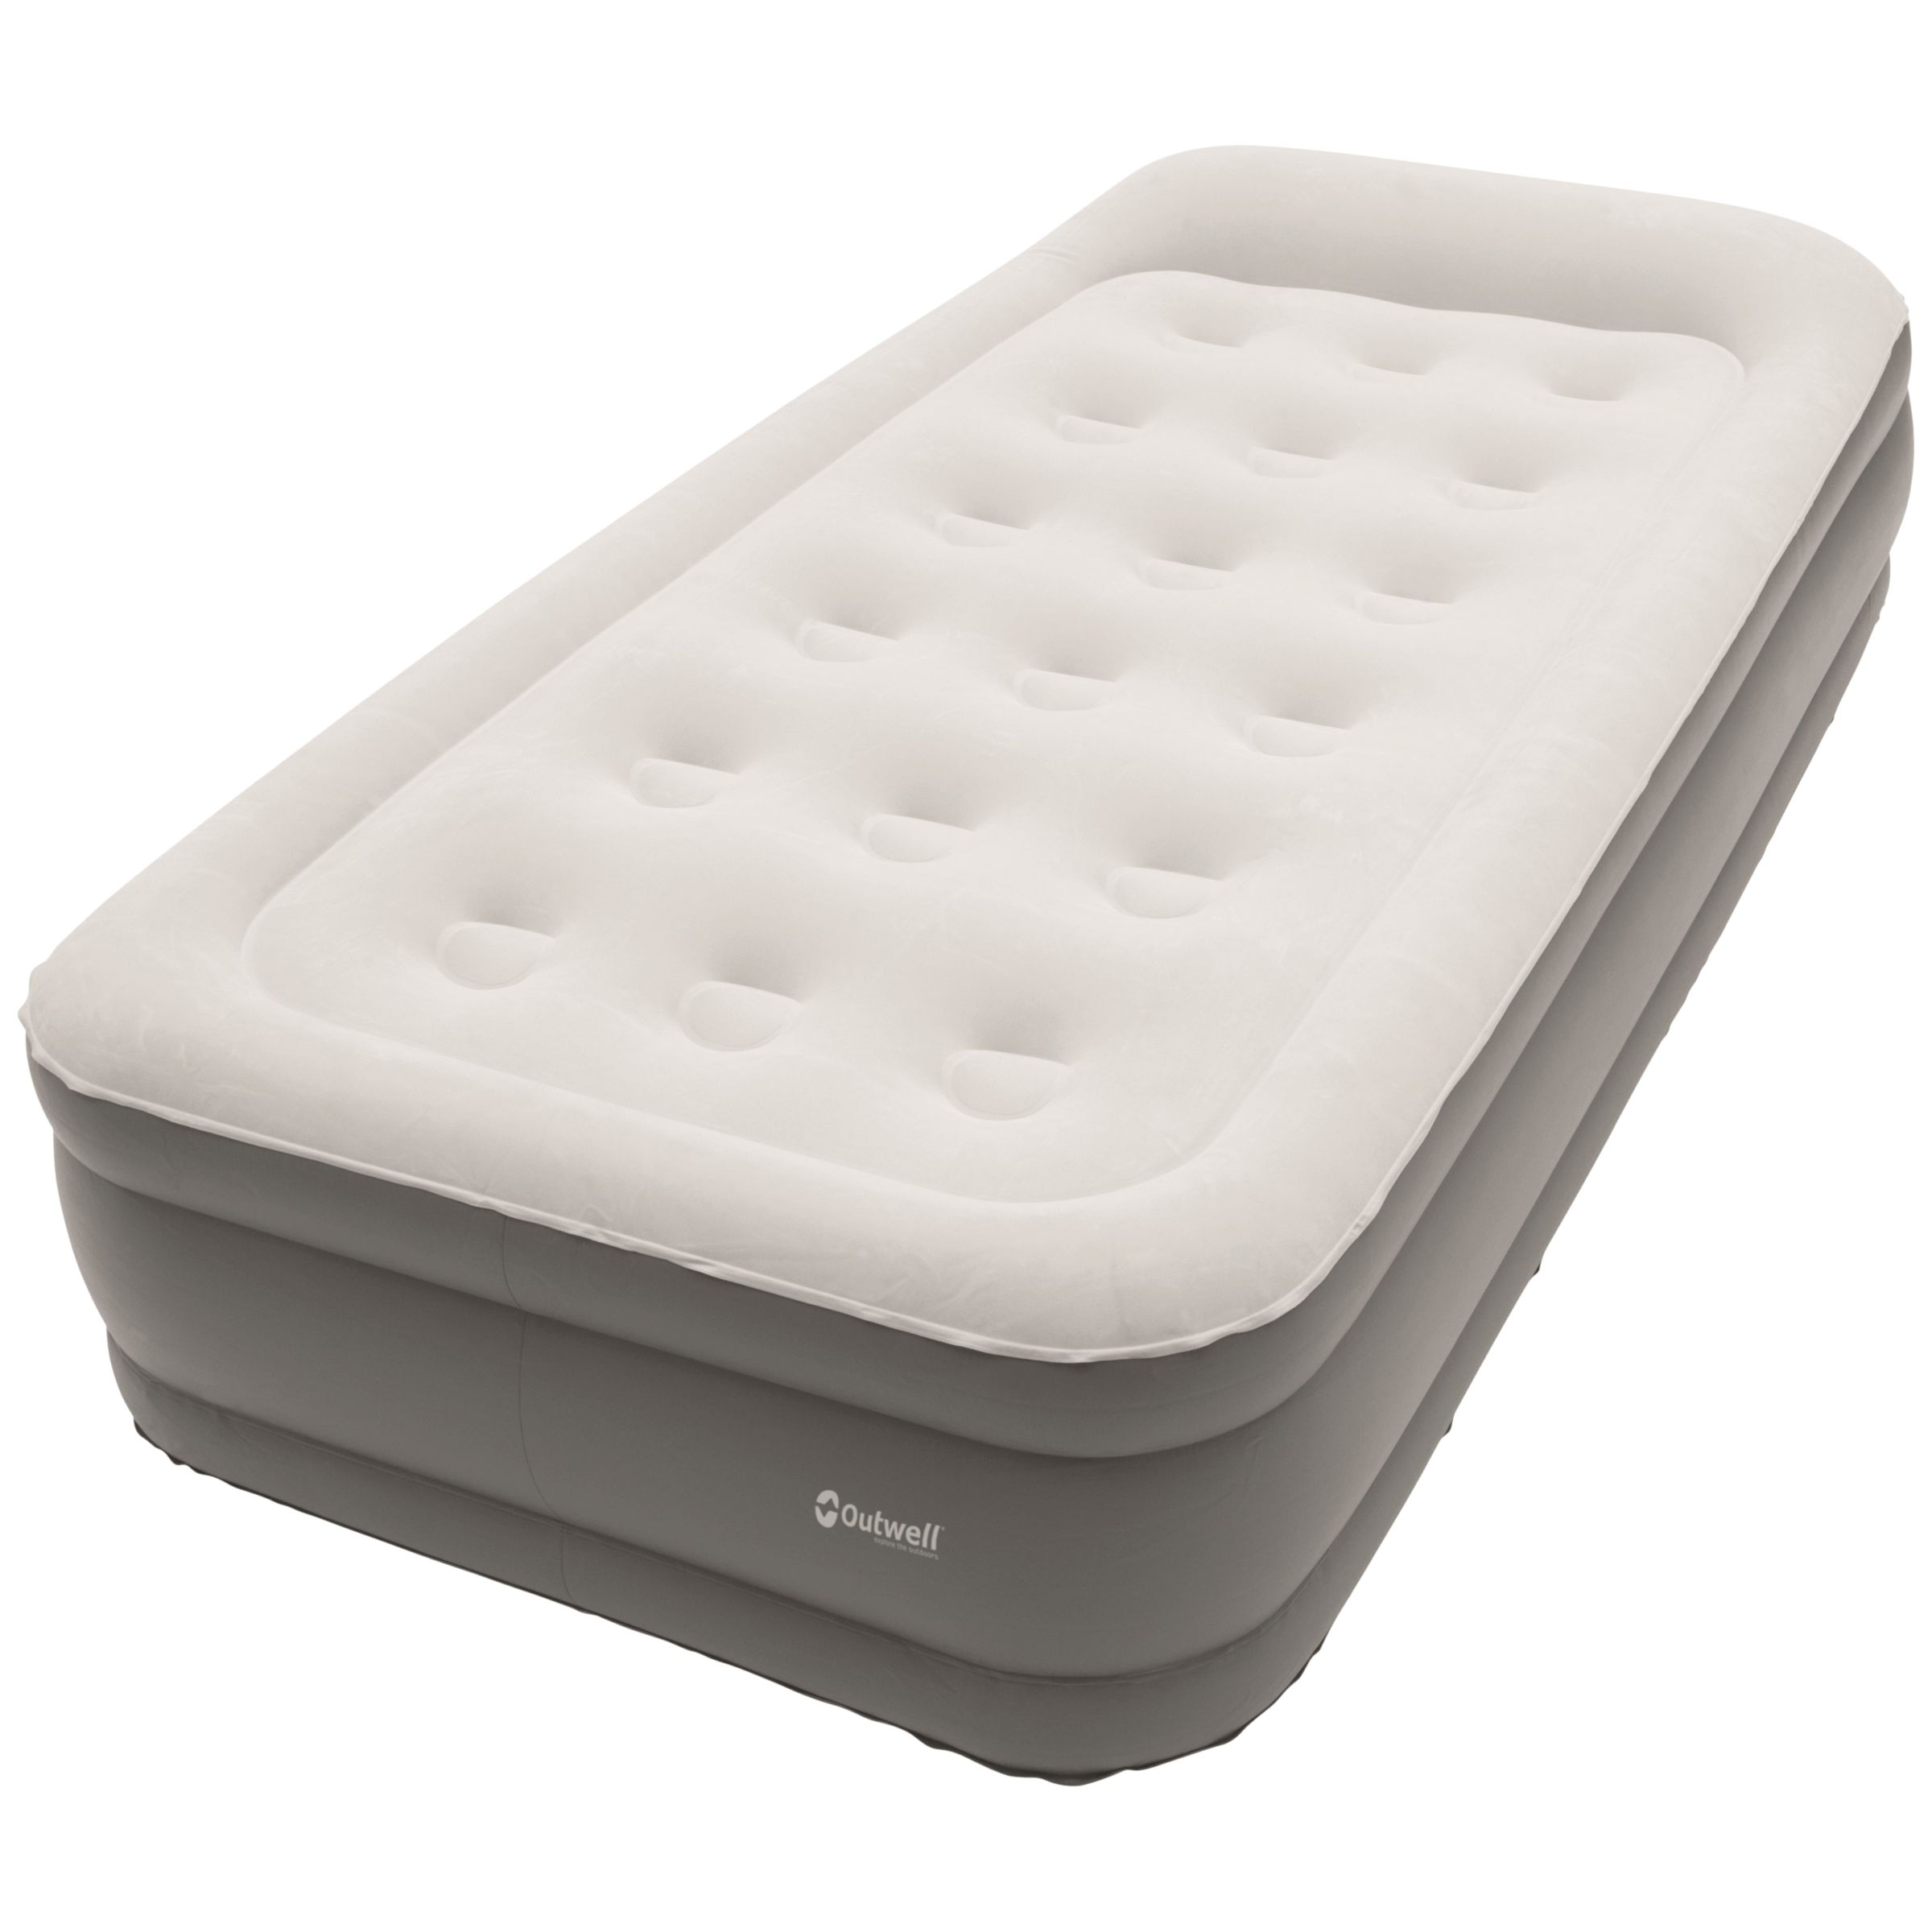 Outwell Outwell Flock Superior Single Airbed With Built-In Pump